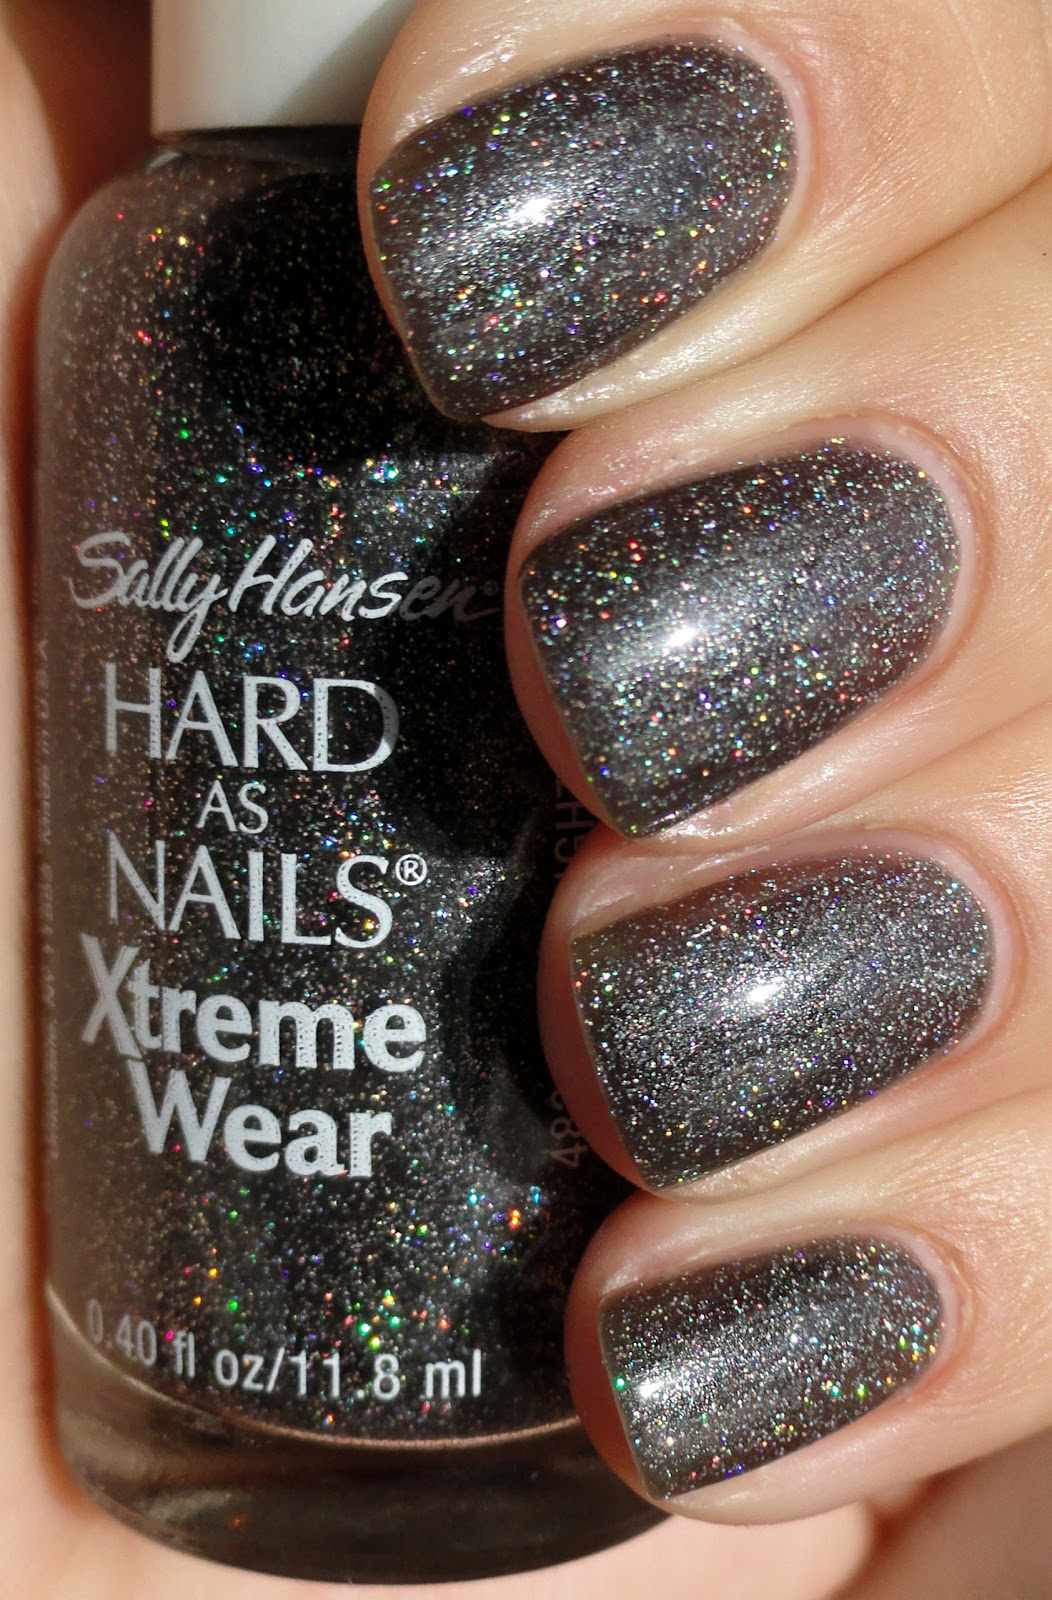 Sally Hansen Hard As Nails Xtreme Wear Night Lights Is A Really Ga Ga  Gorgeous Charcoal Grey Jelly Swimming With Holographic Glitter Pieces.